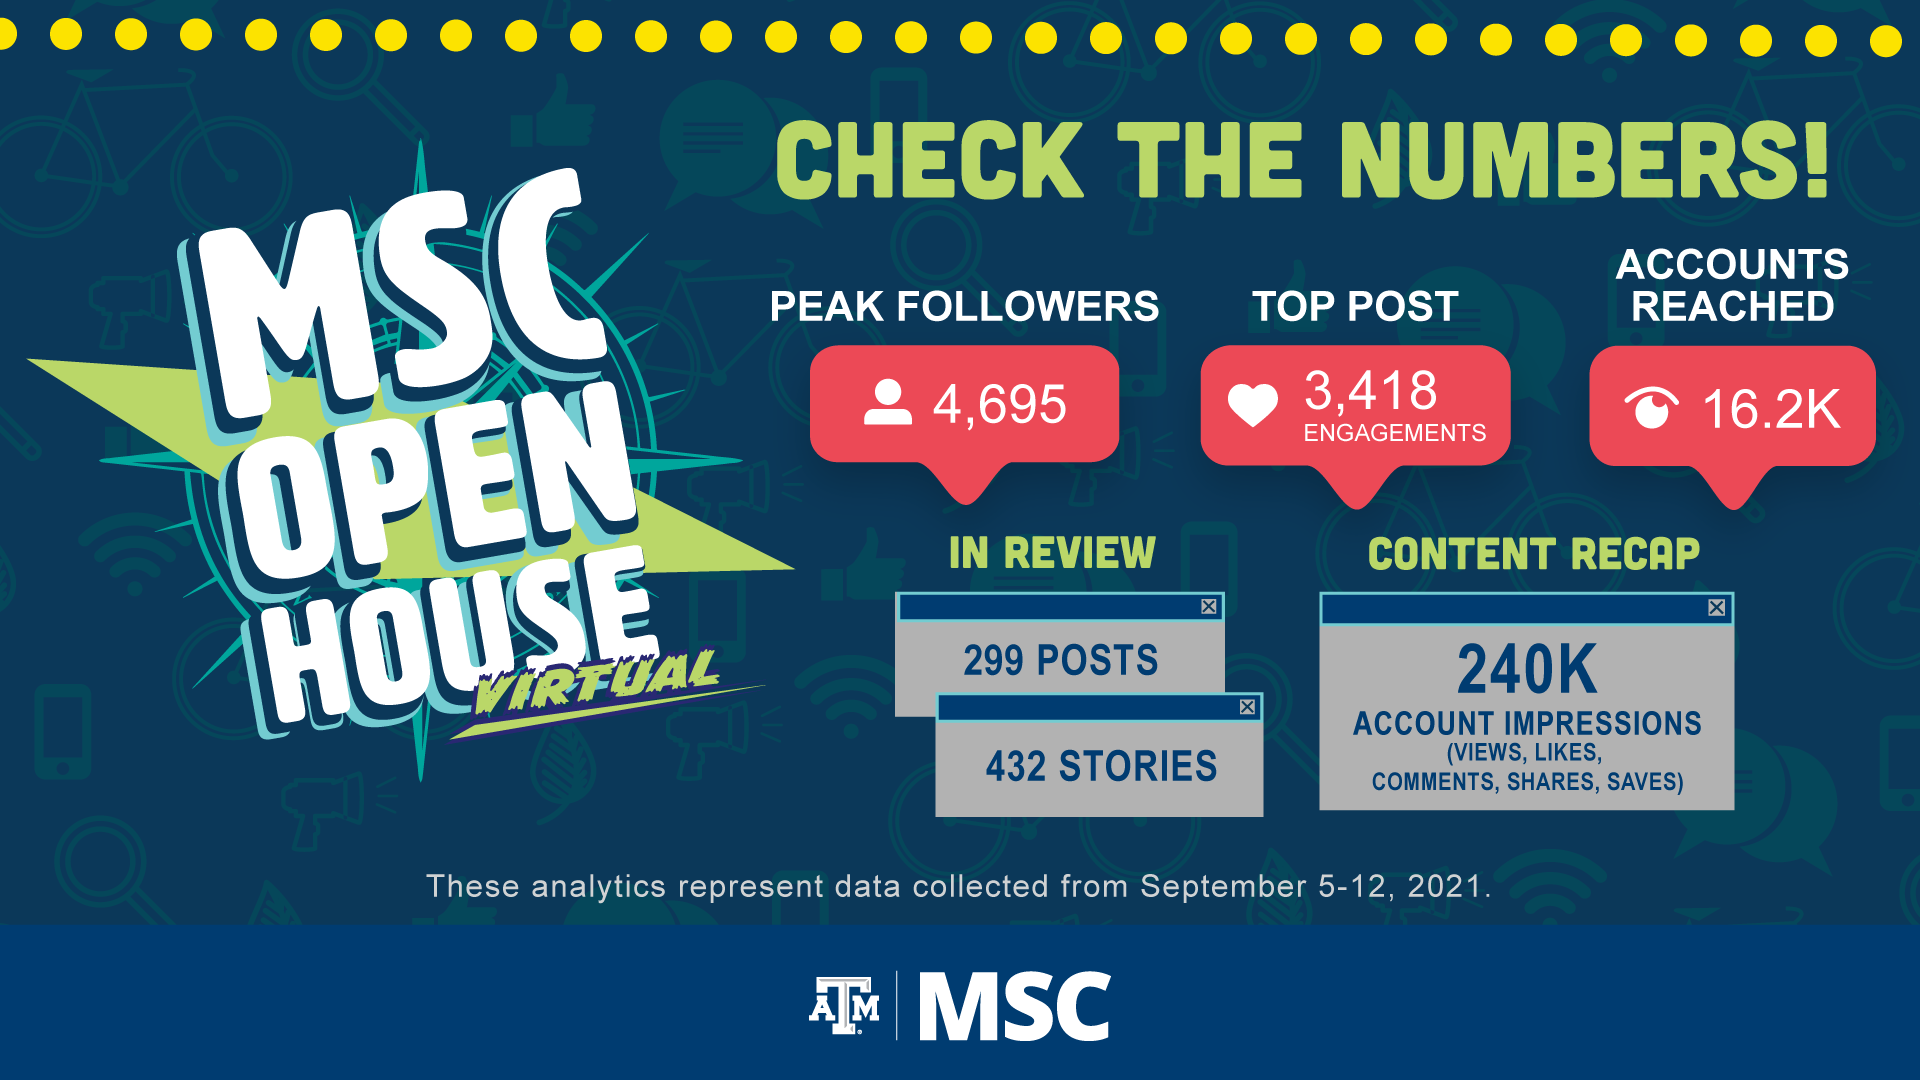 MSC Open House Virtual: Check the Numbers! Peak Followers: 4, 695. Top Post: 3, 418 Engagements. Accounts Reached: 16.2 K. In Review: 299 Posts, 432 Stories. Content Recap: 240K Account Impressions (Views, Likes, Comments, Shares, Saves) These analytics represent date collected from September 5-12, 2021.